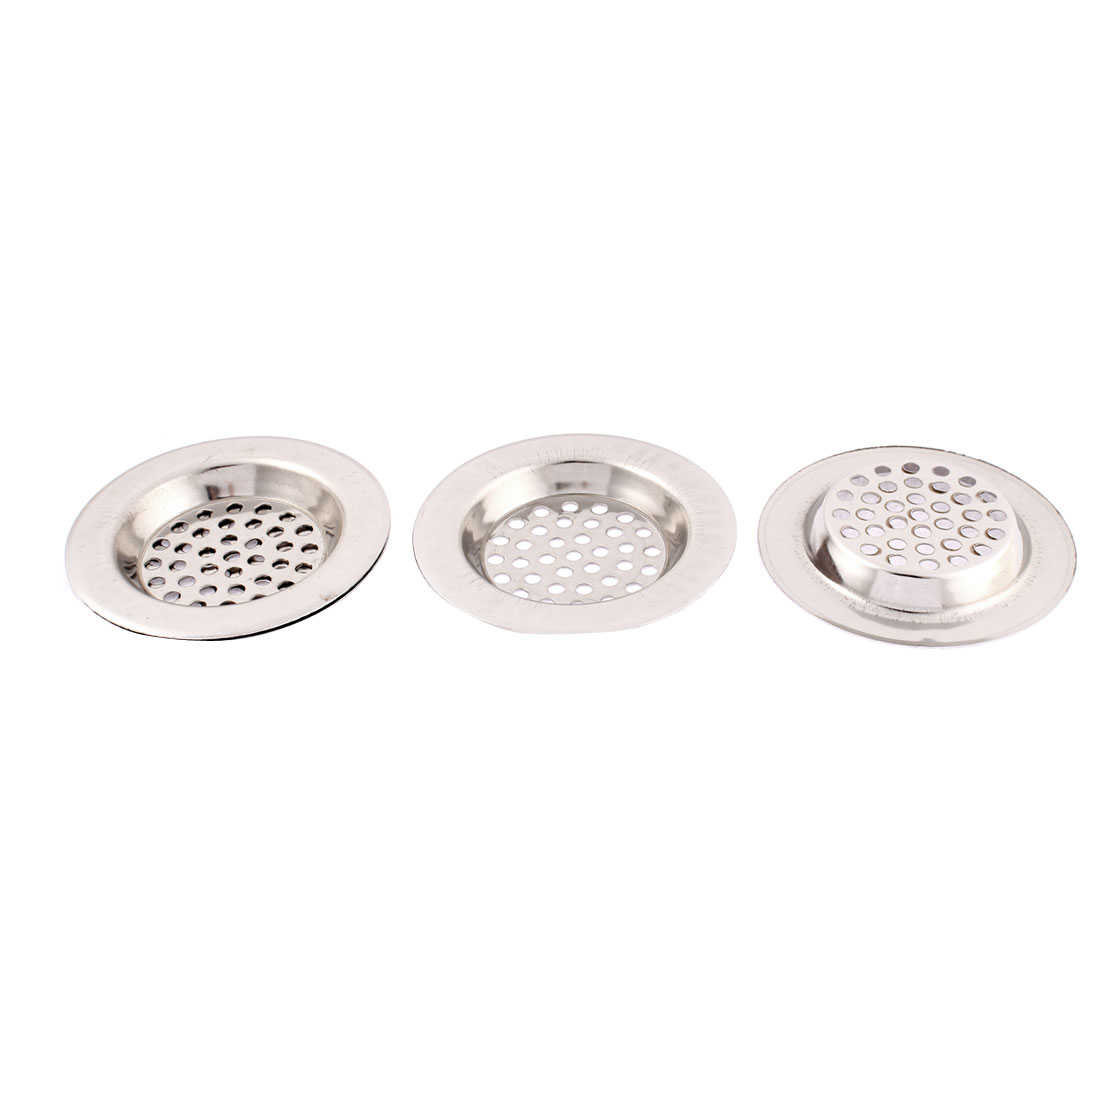 Unique Bargains Bathroom Stainless Steel Sink Strainer Floor Drain Filter Stopper 3 Inch Dia 4 Pcs